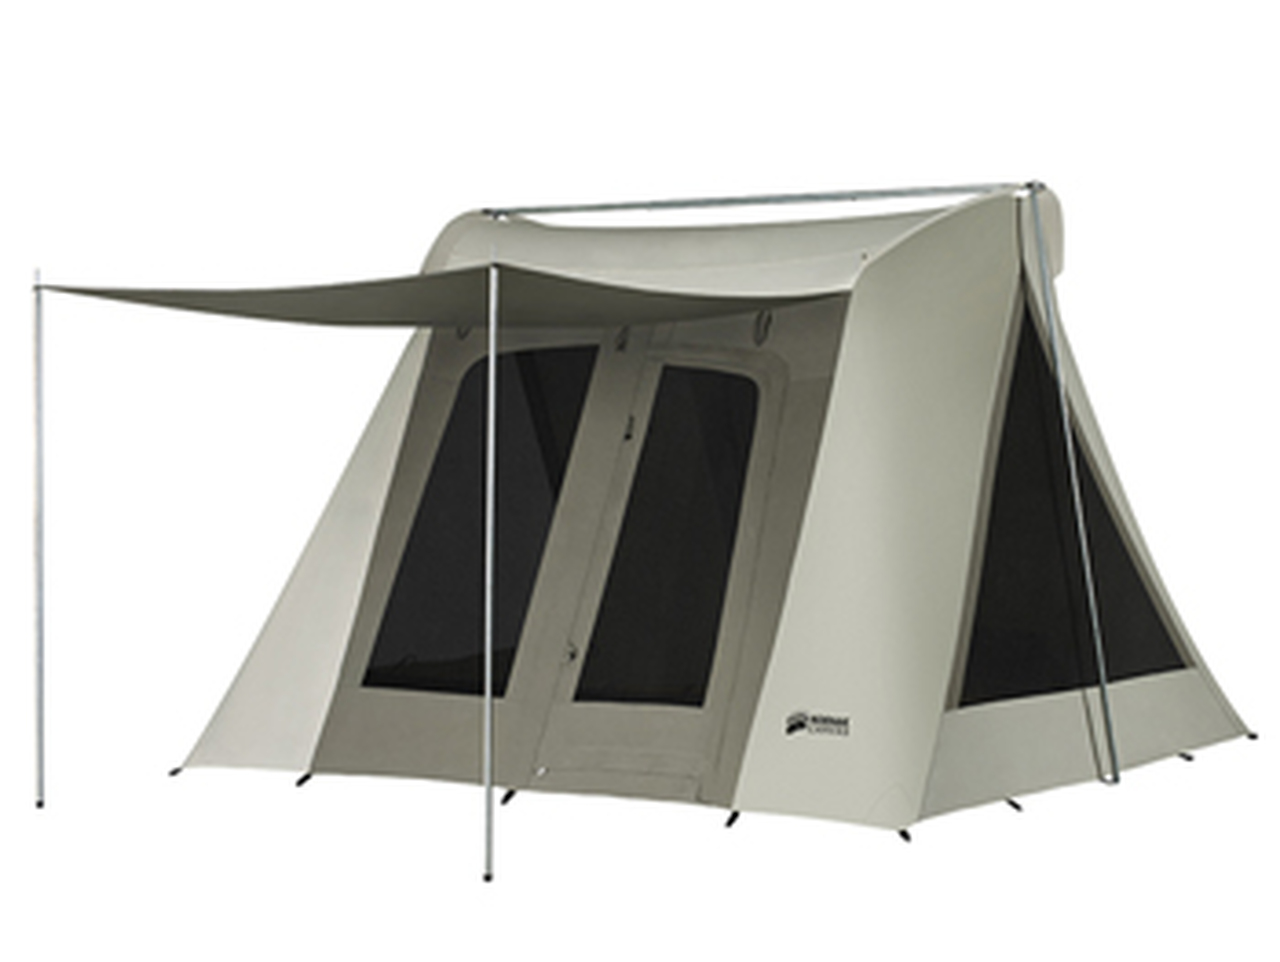 10 x 10 ft. Flex-Bow VX Tent - Estimated Restock Date is June 19th, 2020